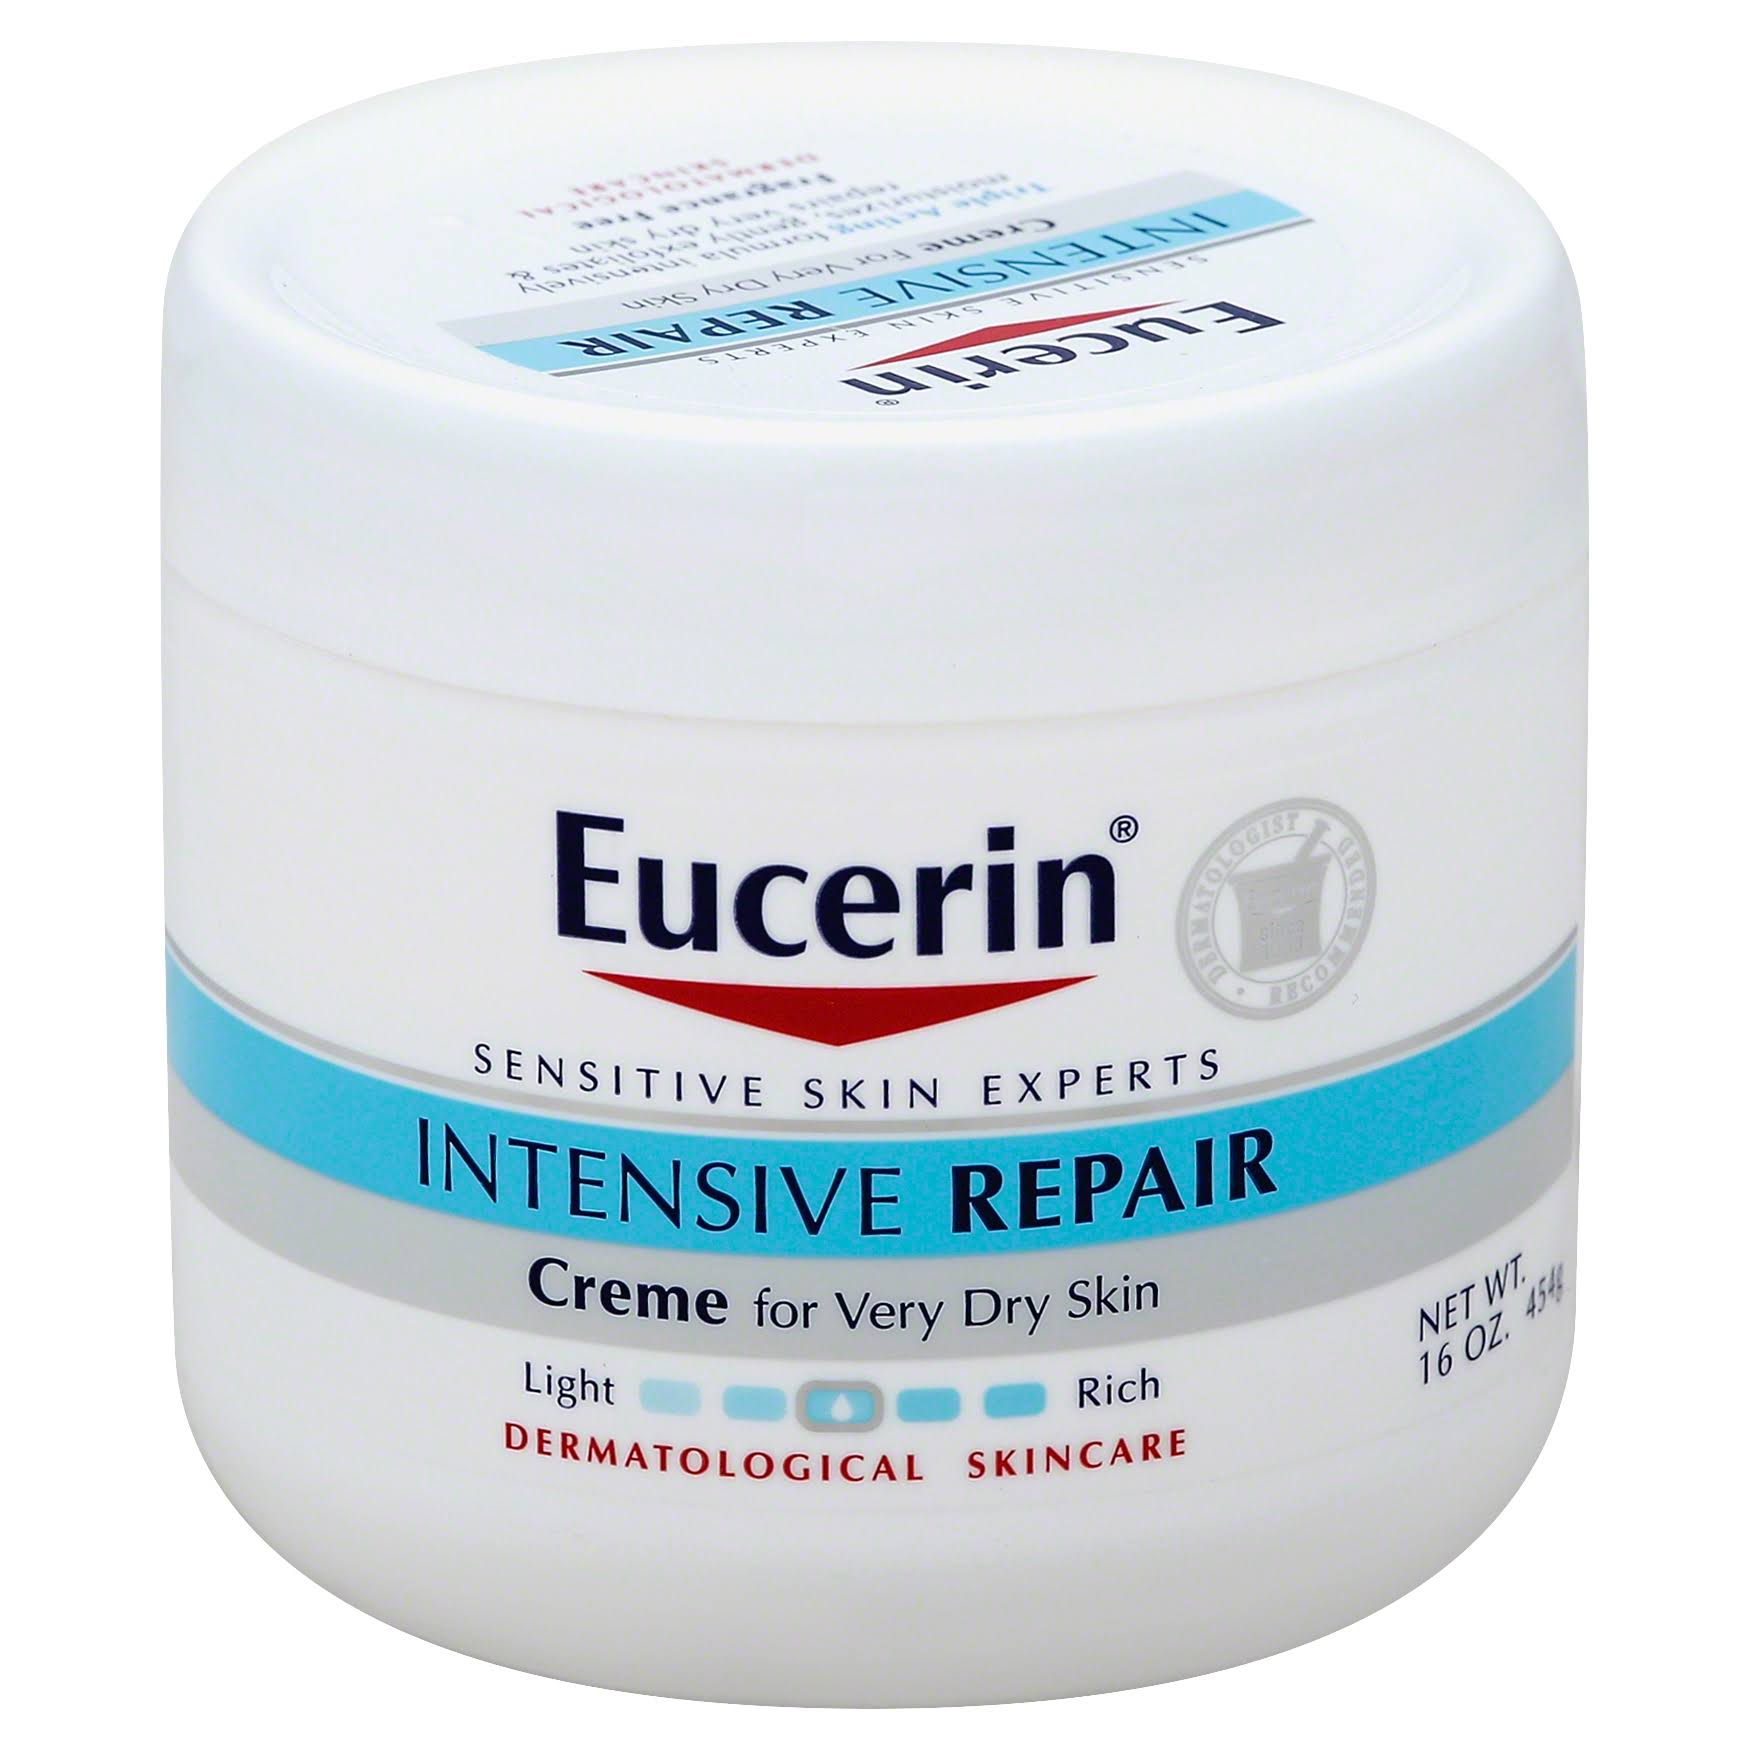 Eucerin Advanced Repair Creme - 16oz